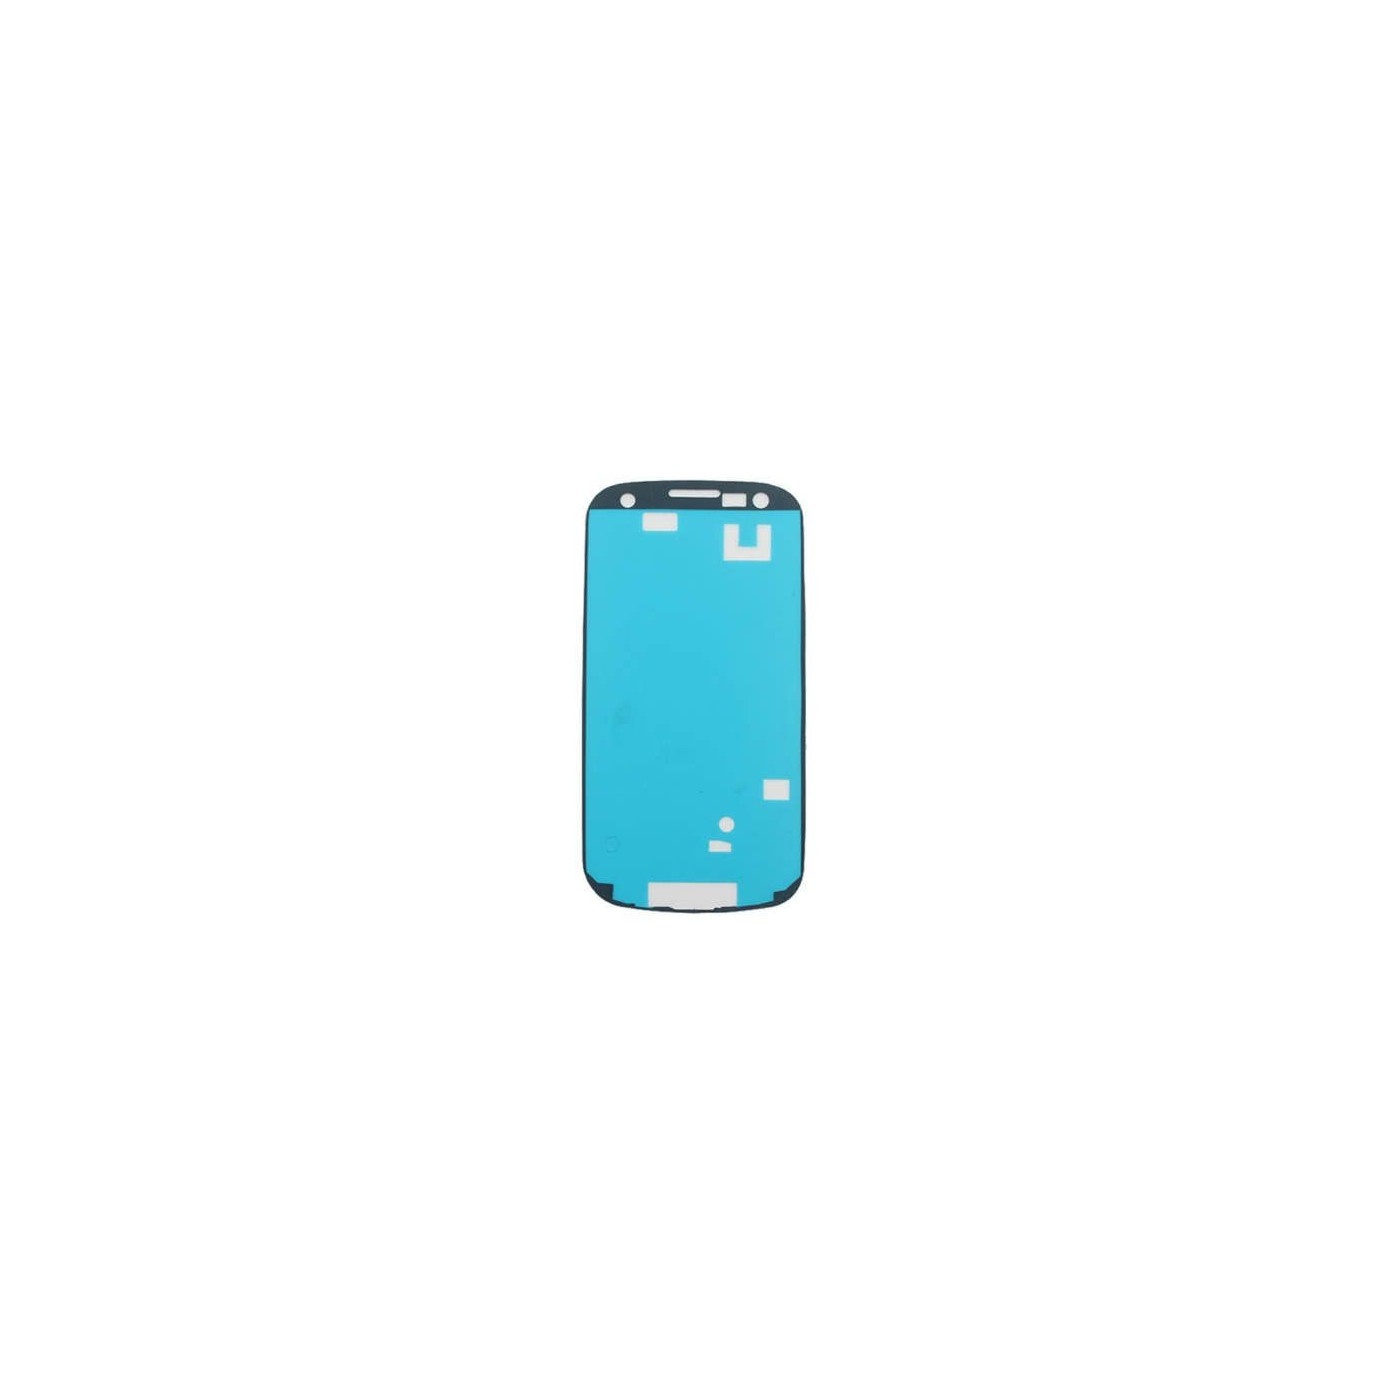 Double-sided glass for samsung galaxy s4 mini i9195